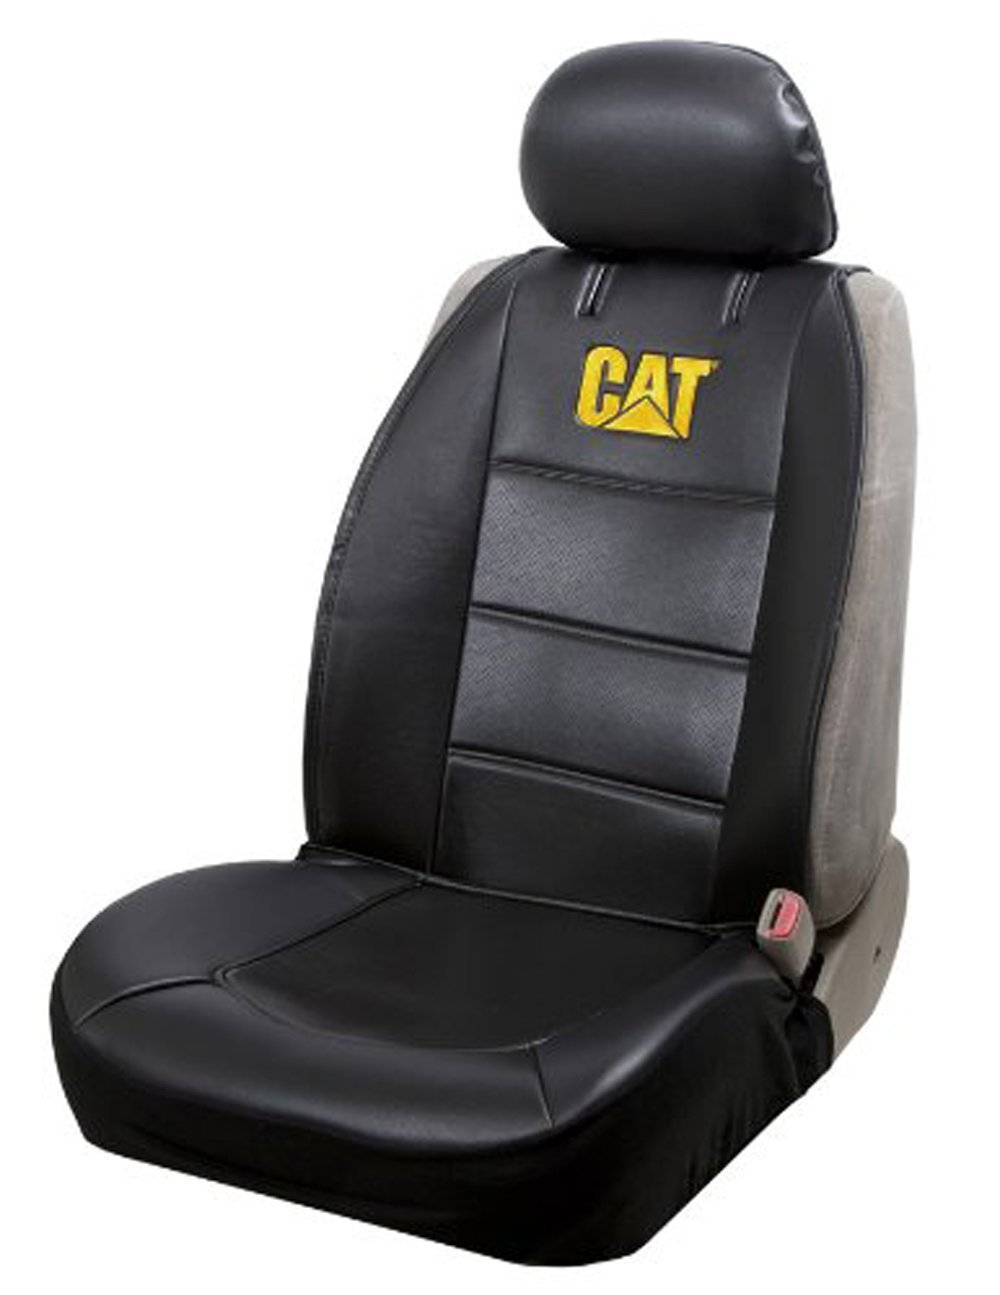 9r2653 Cat Seat : Caterpillar cat universal sideless car truck seat covers w